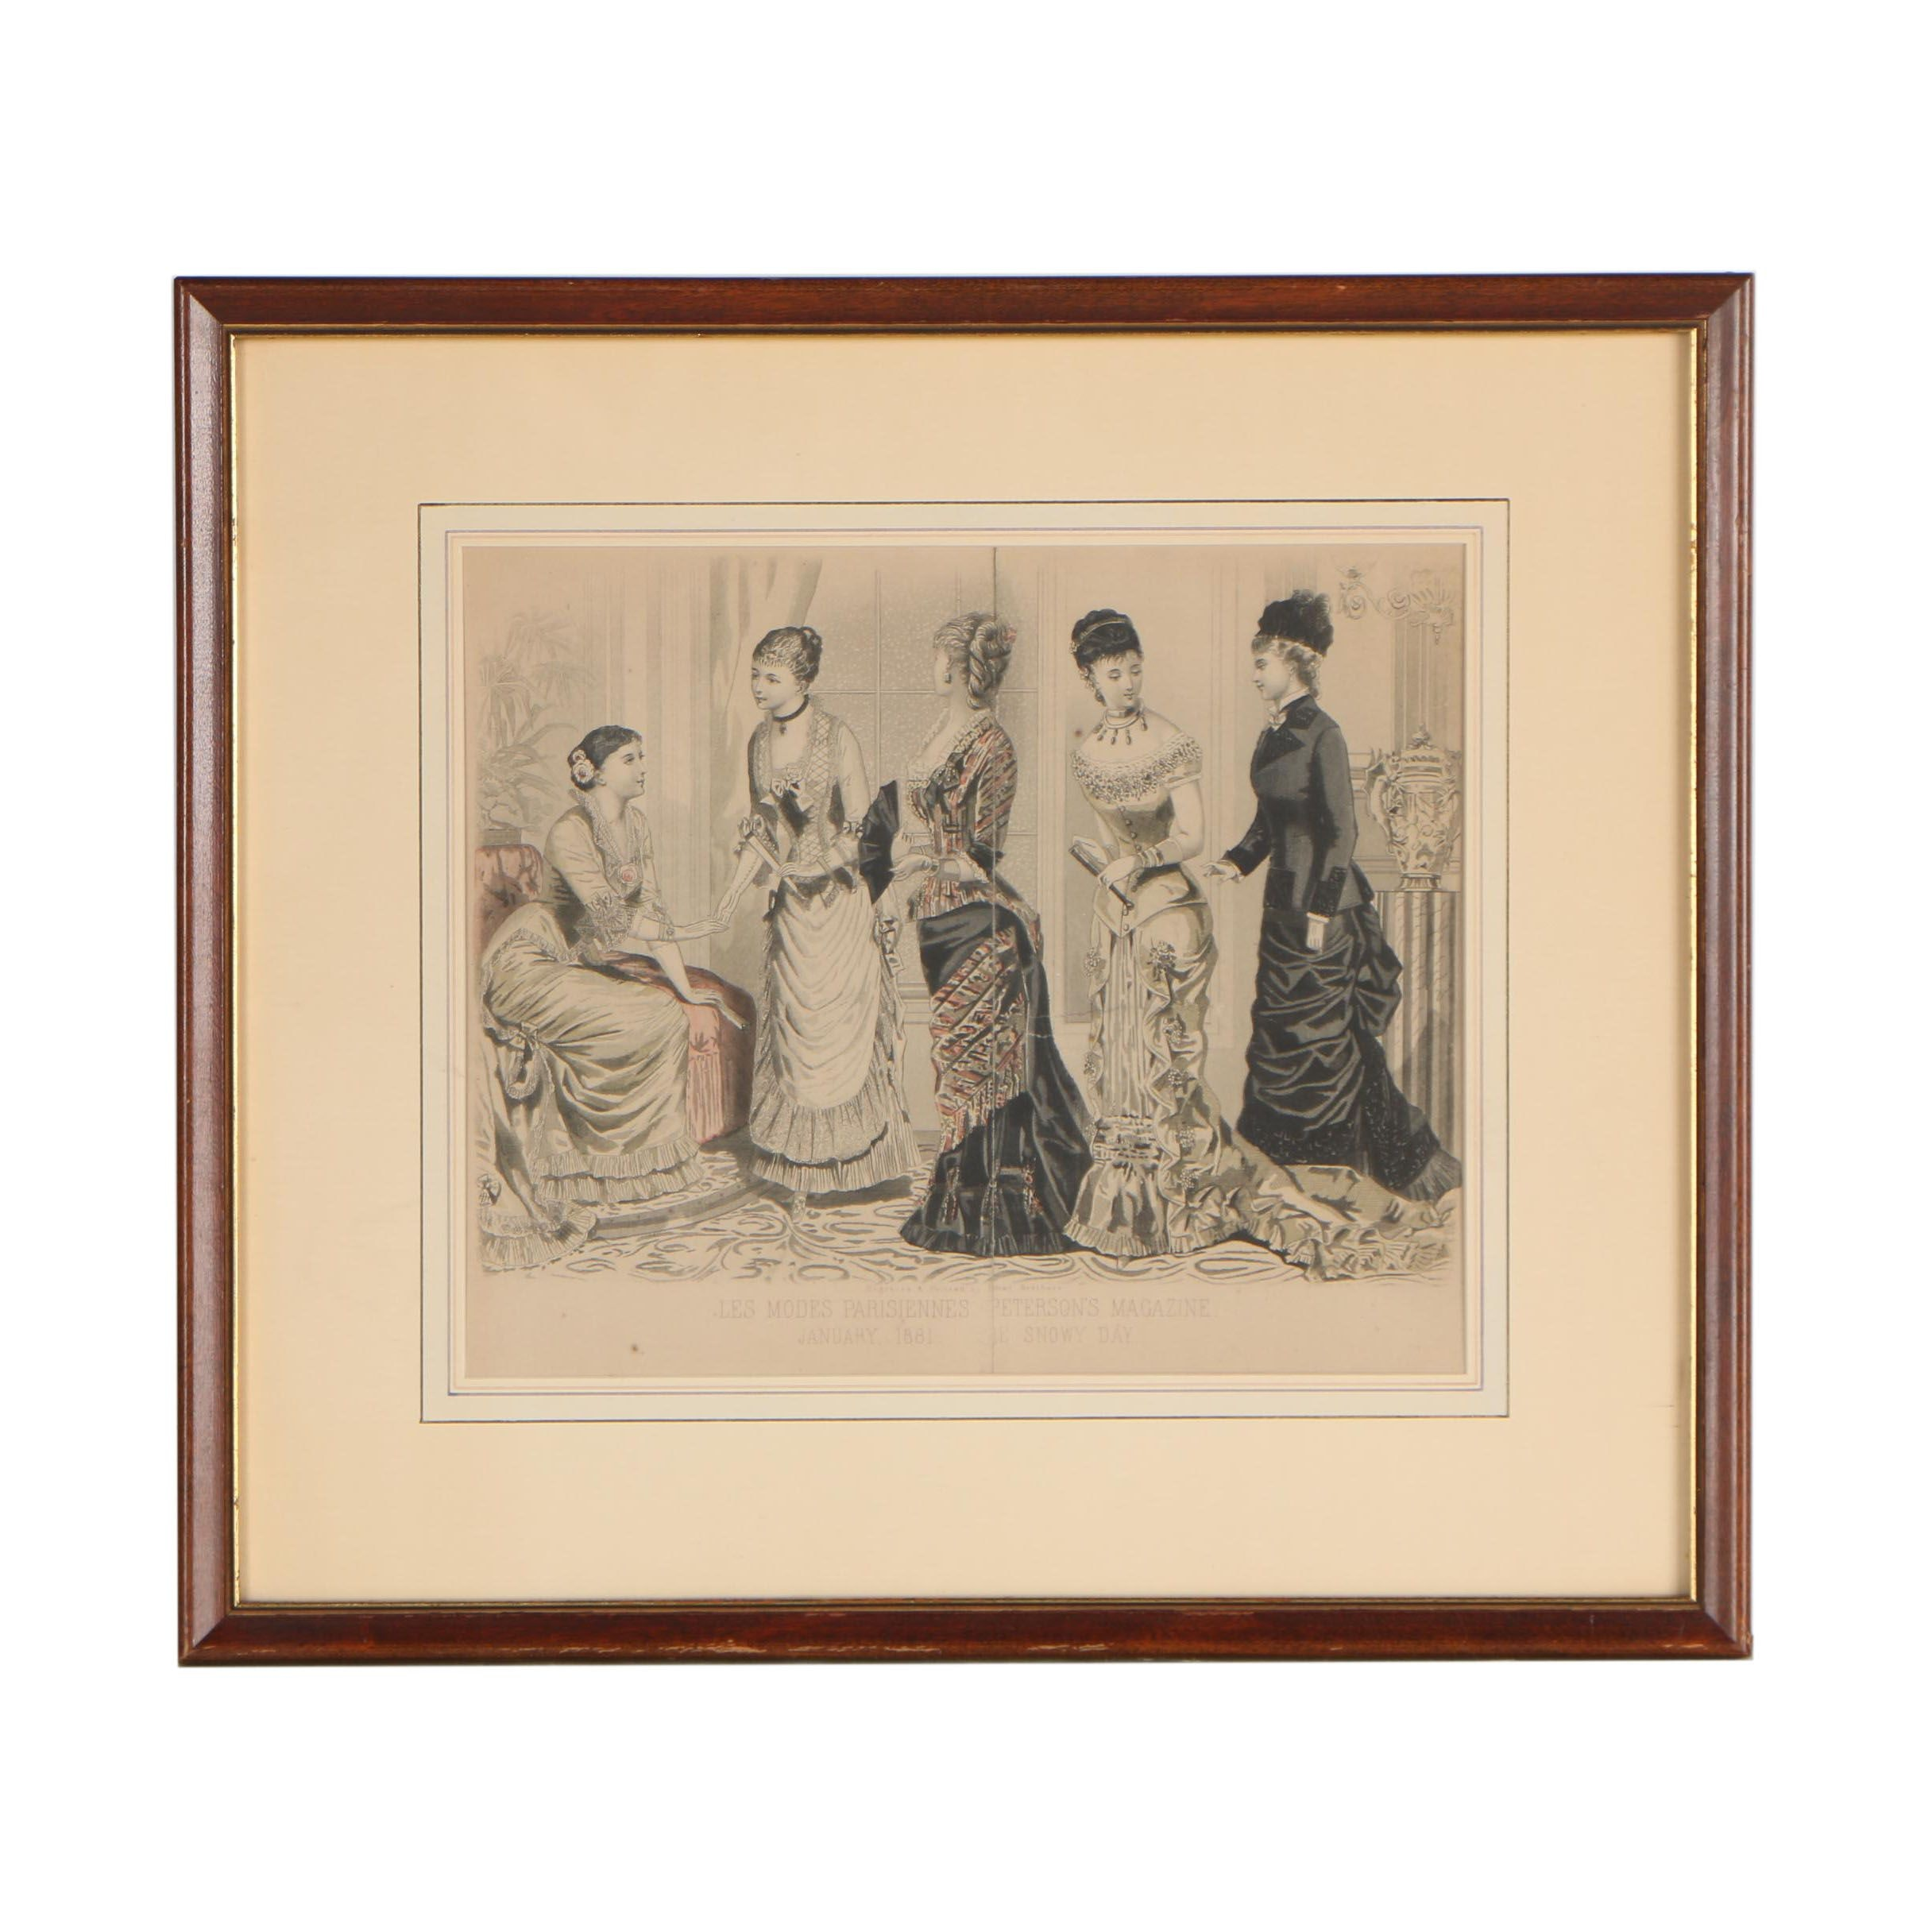 """Illman Brothers Hand-Colored Engraving """"Les Modes Parisiennes: The Snowy Day"""""""